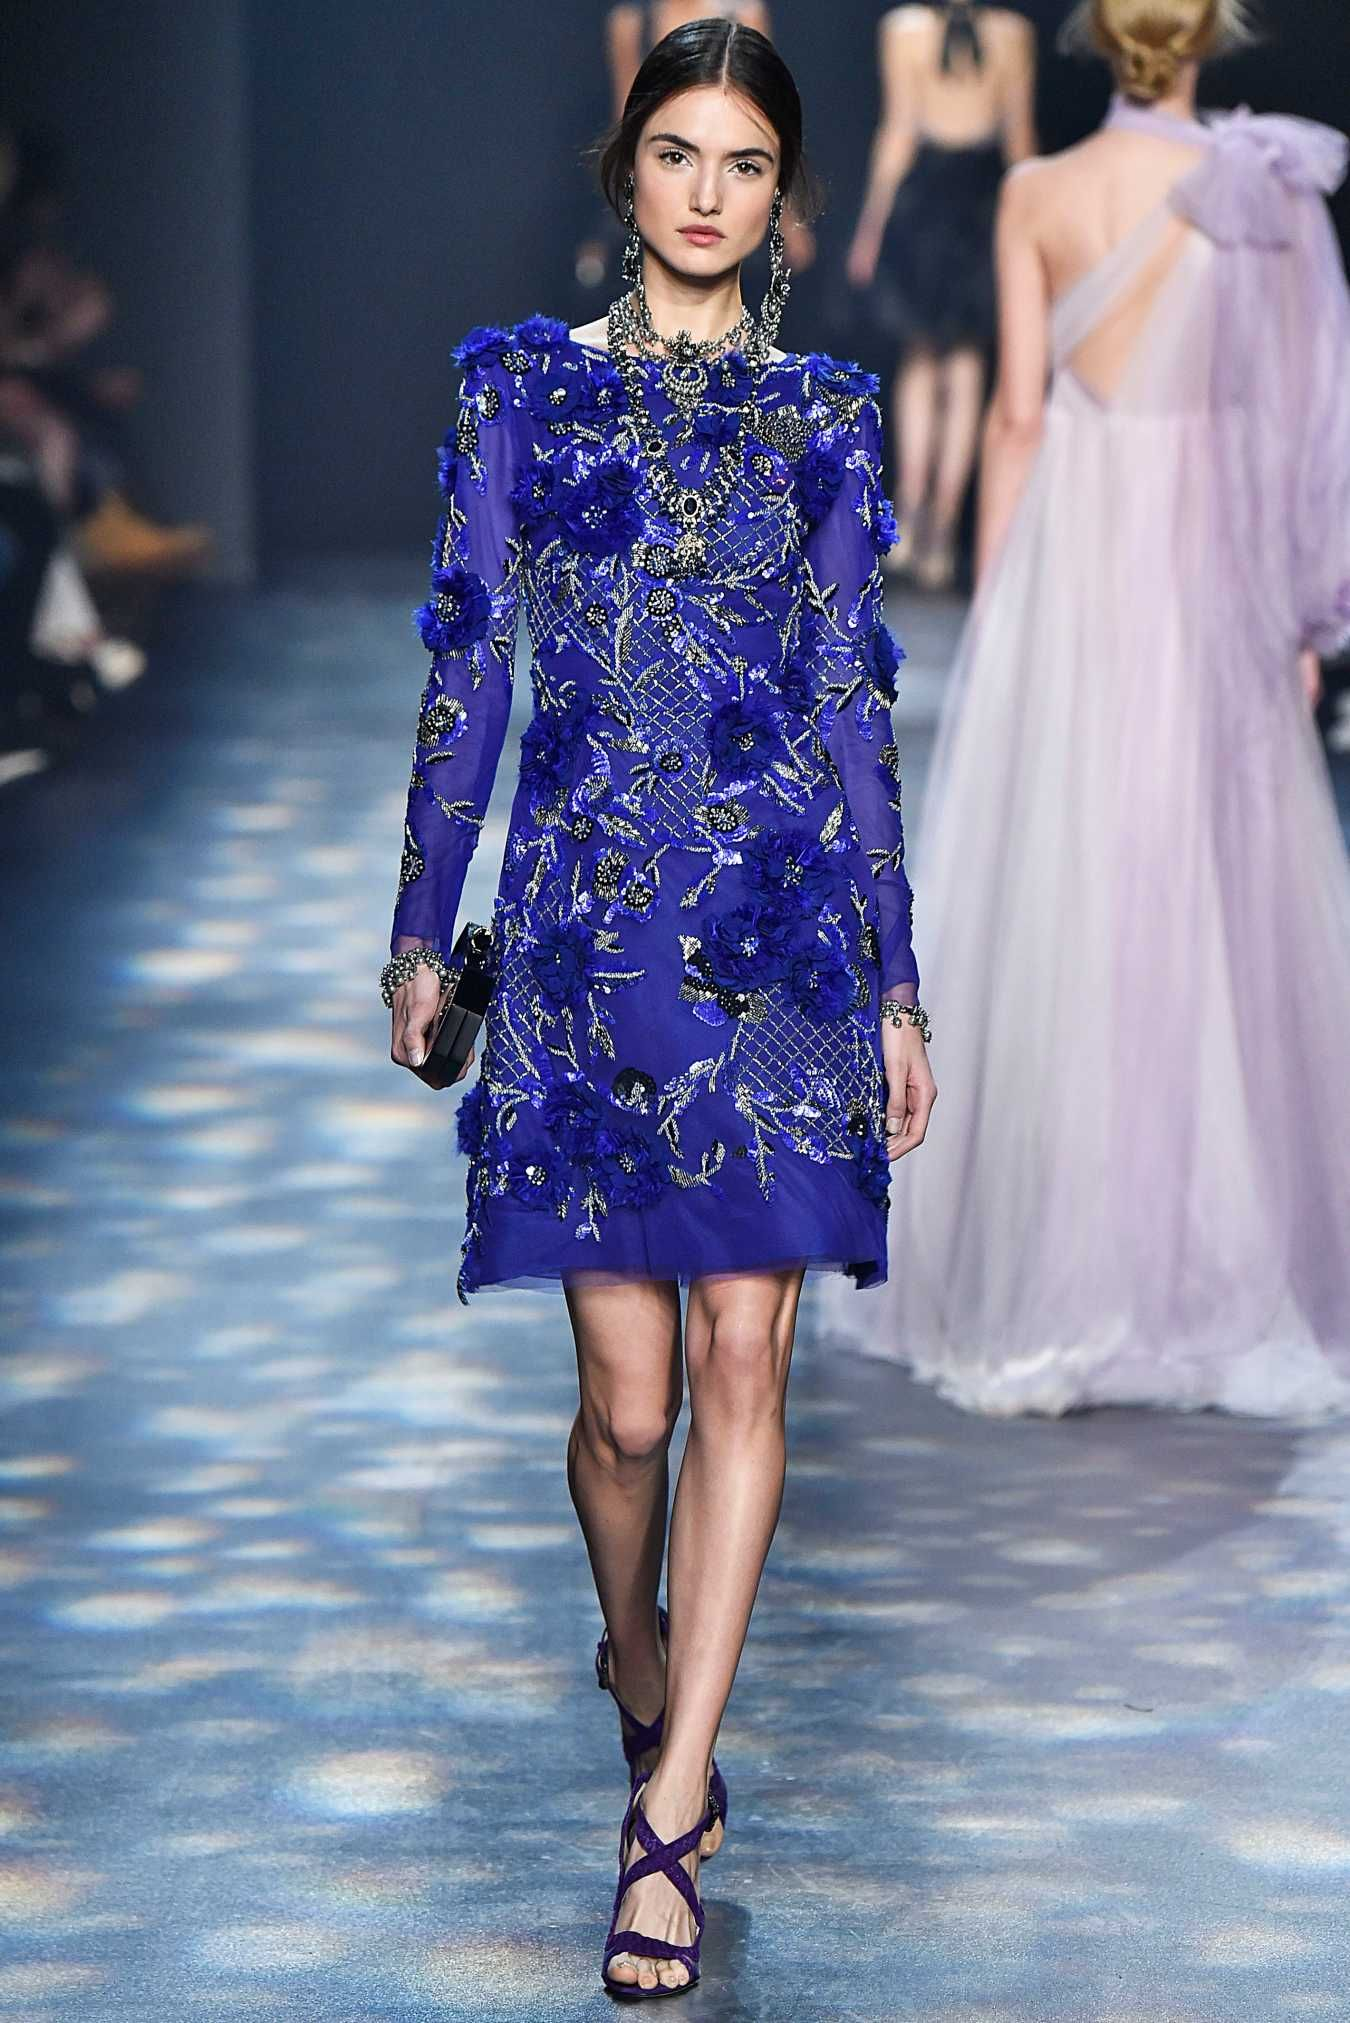 Marchesa Presents Jaw-Droppingly Gorgeous Dresses Made for the ...